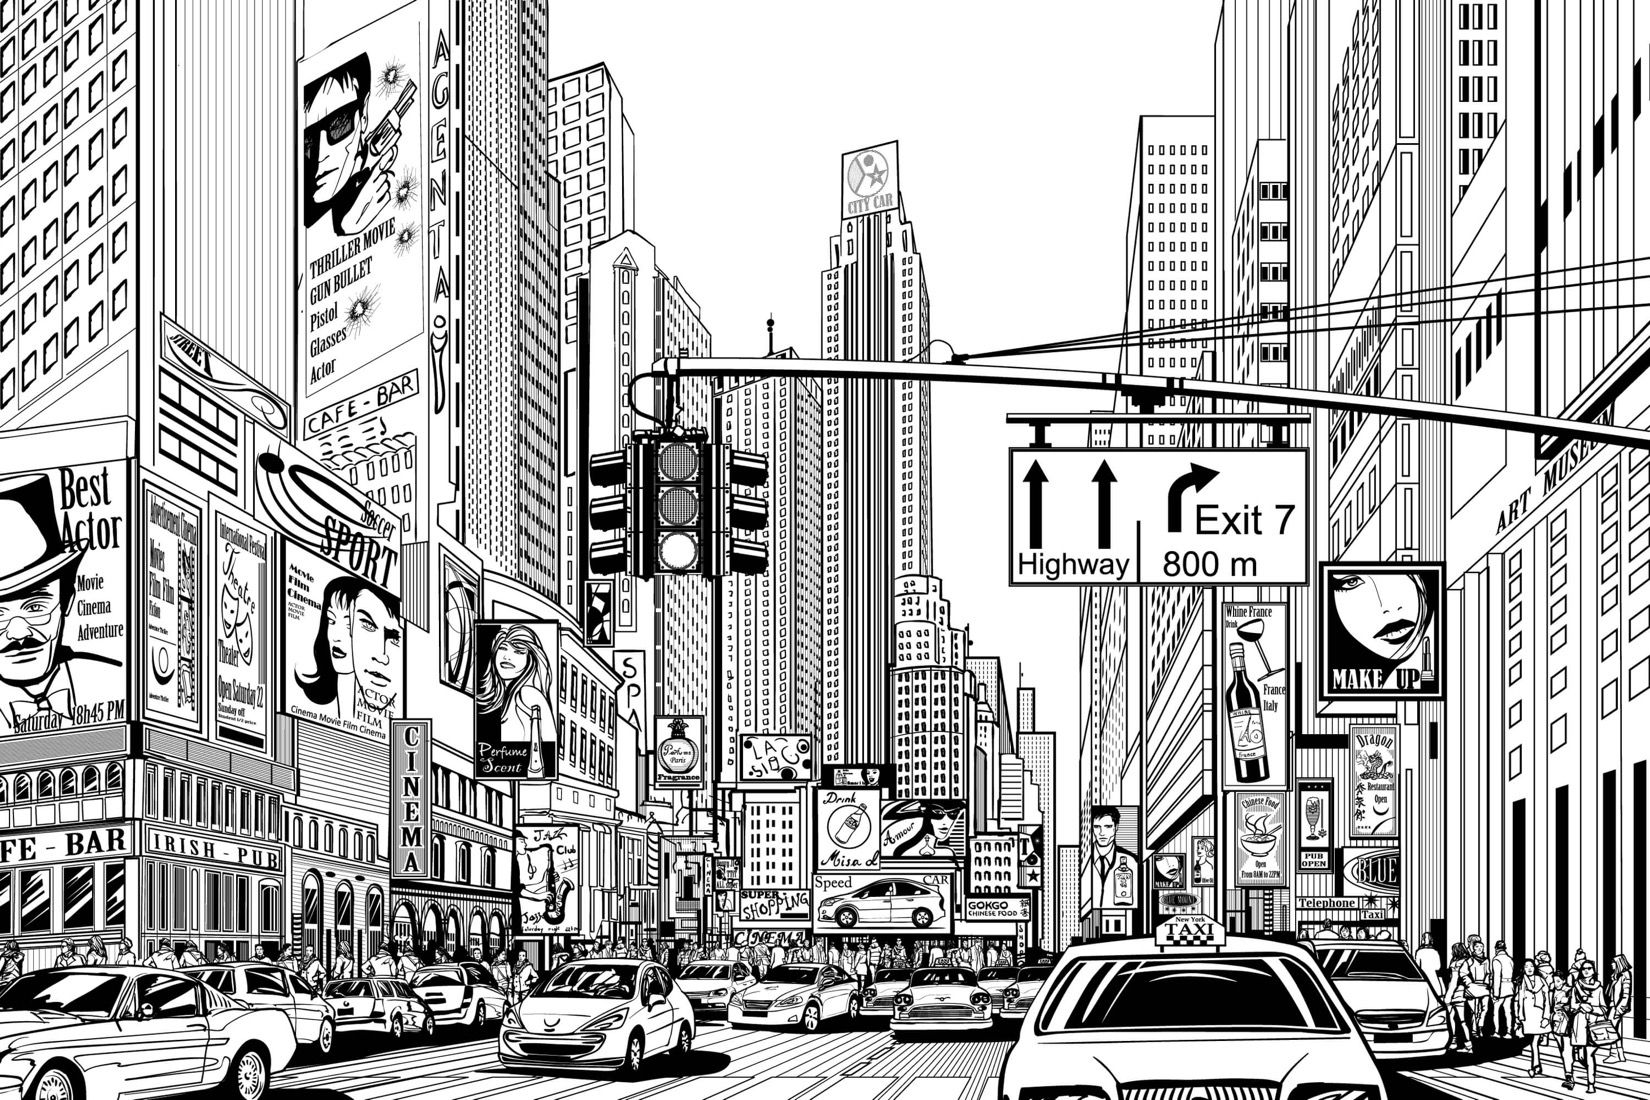 Illustrated Nyc Mural Wallpaper Custom Made To Suit Your Wall Size By The Uk S No 1 For Murals Custom Design Servi City Cartoon New York Wallpaper Nyc Murals